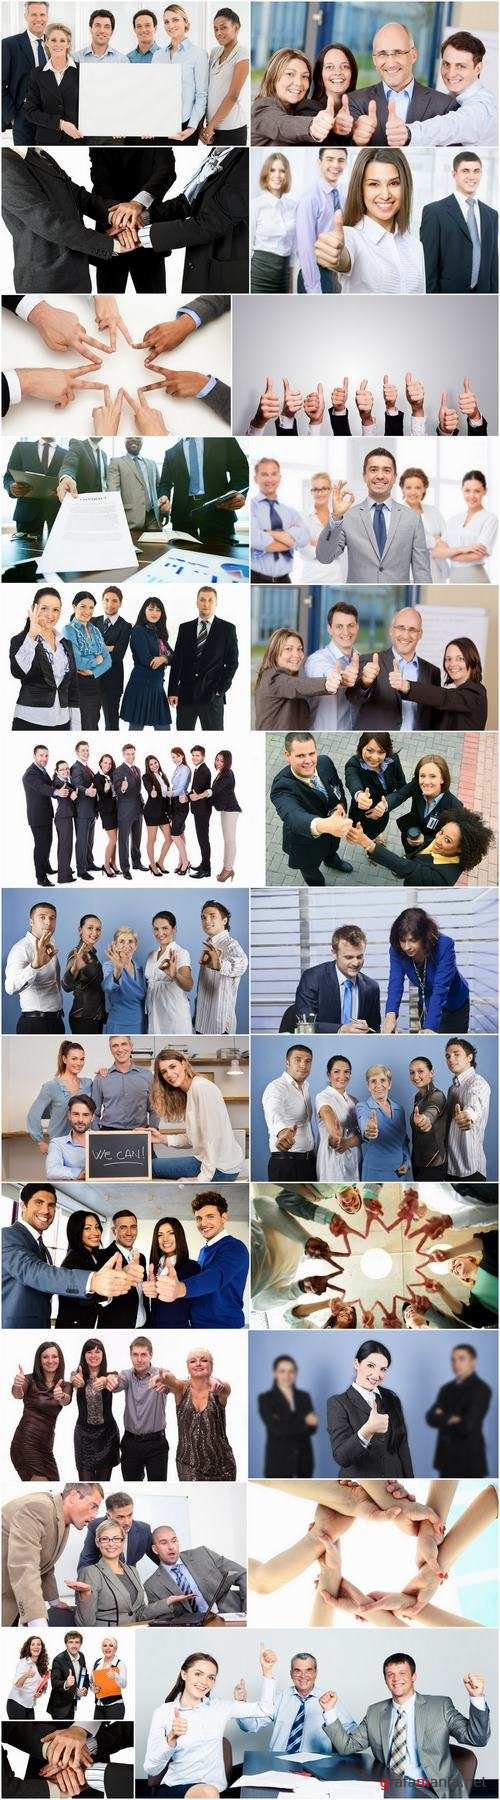 Teamwork businessman business woman friendship 25 HQ Jpeg